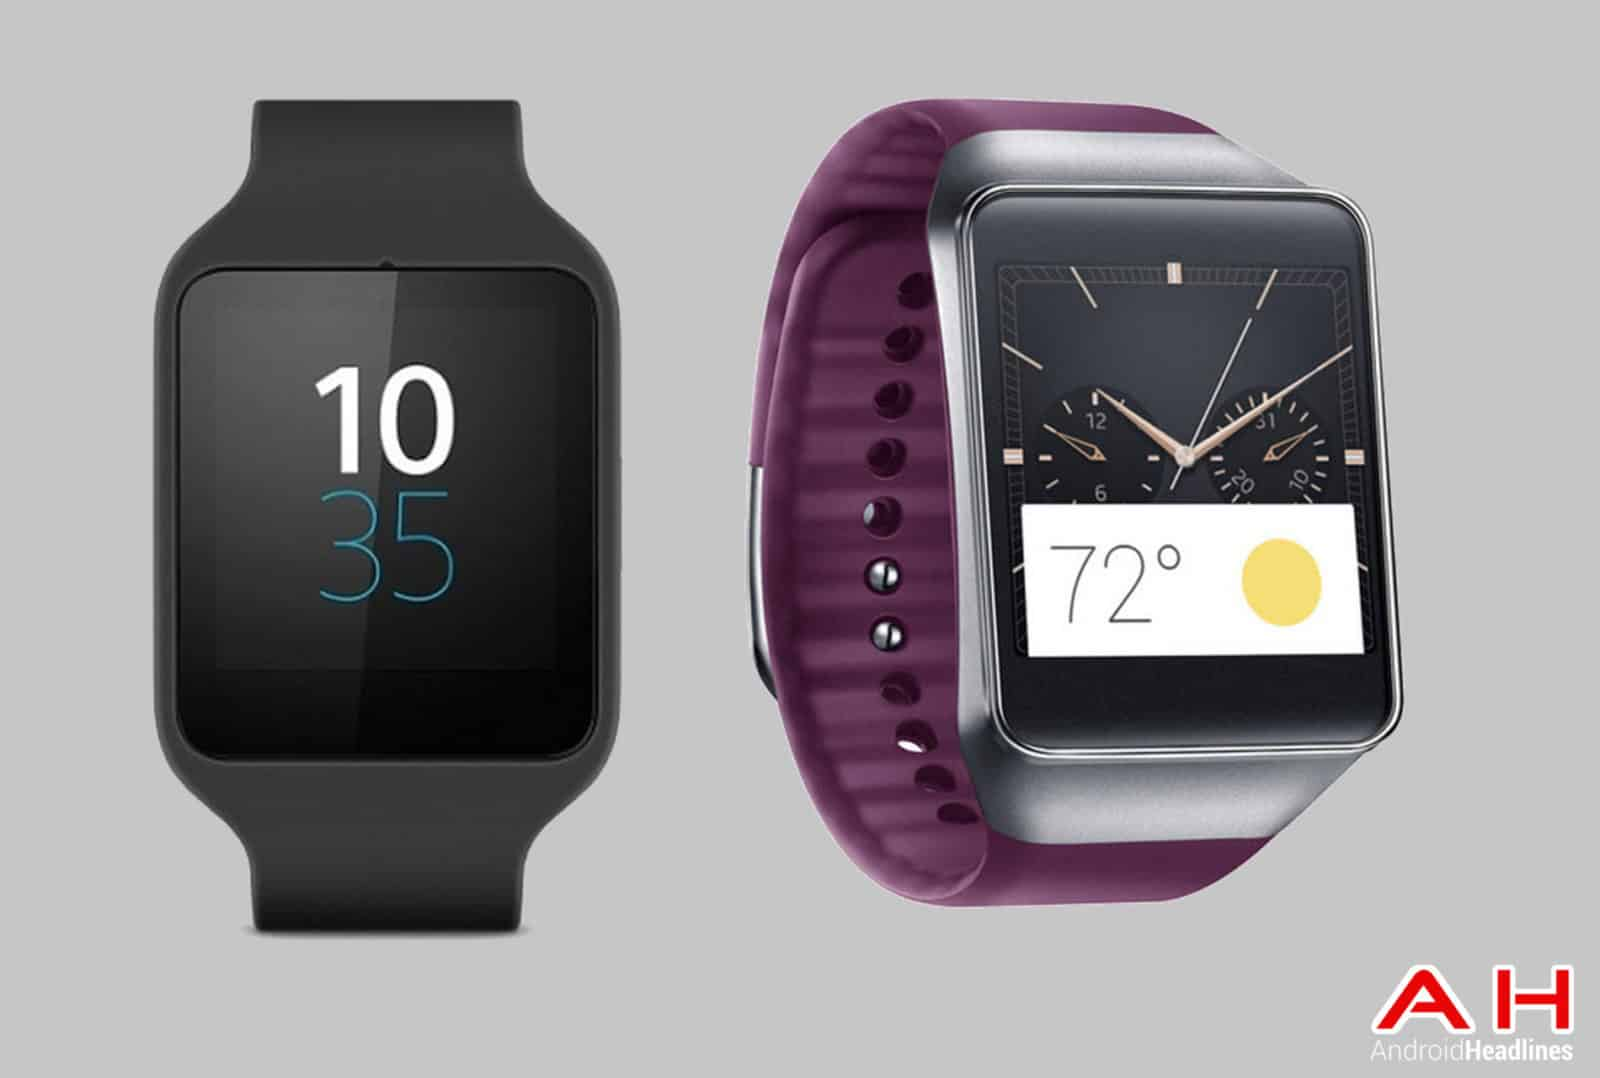 Sony SmartWatch 3 vs Gear Live cam AH